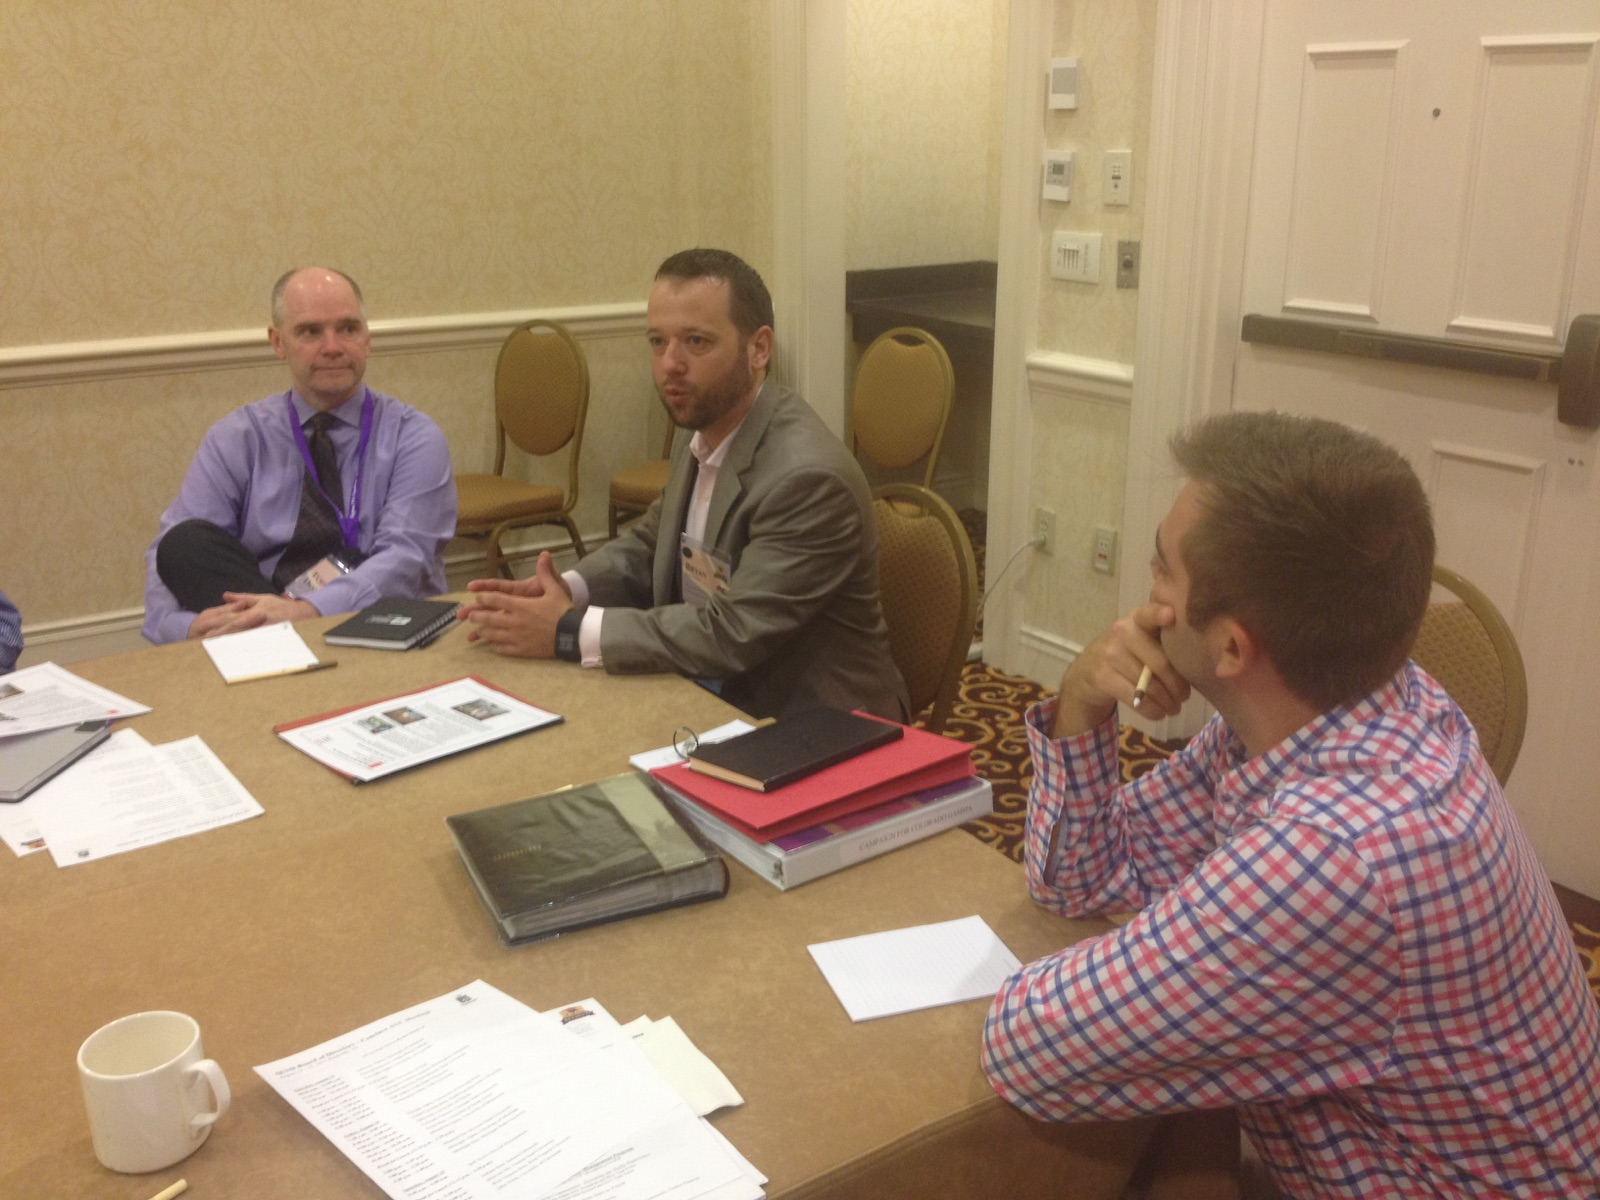 CSU SigEp meeting with SigEp National Housing